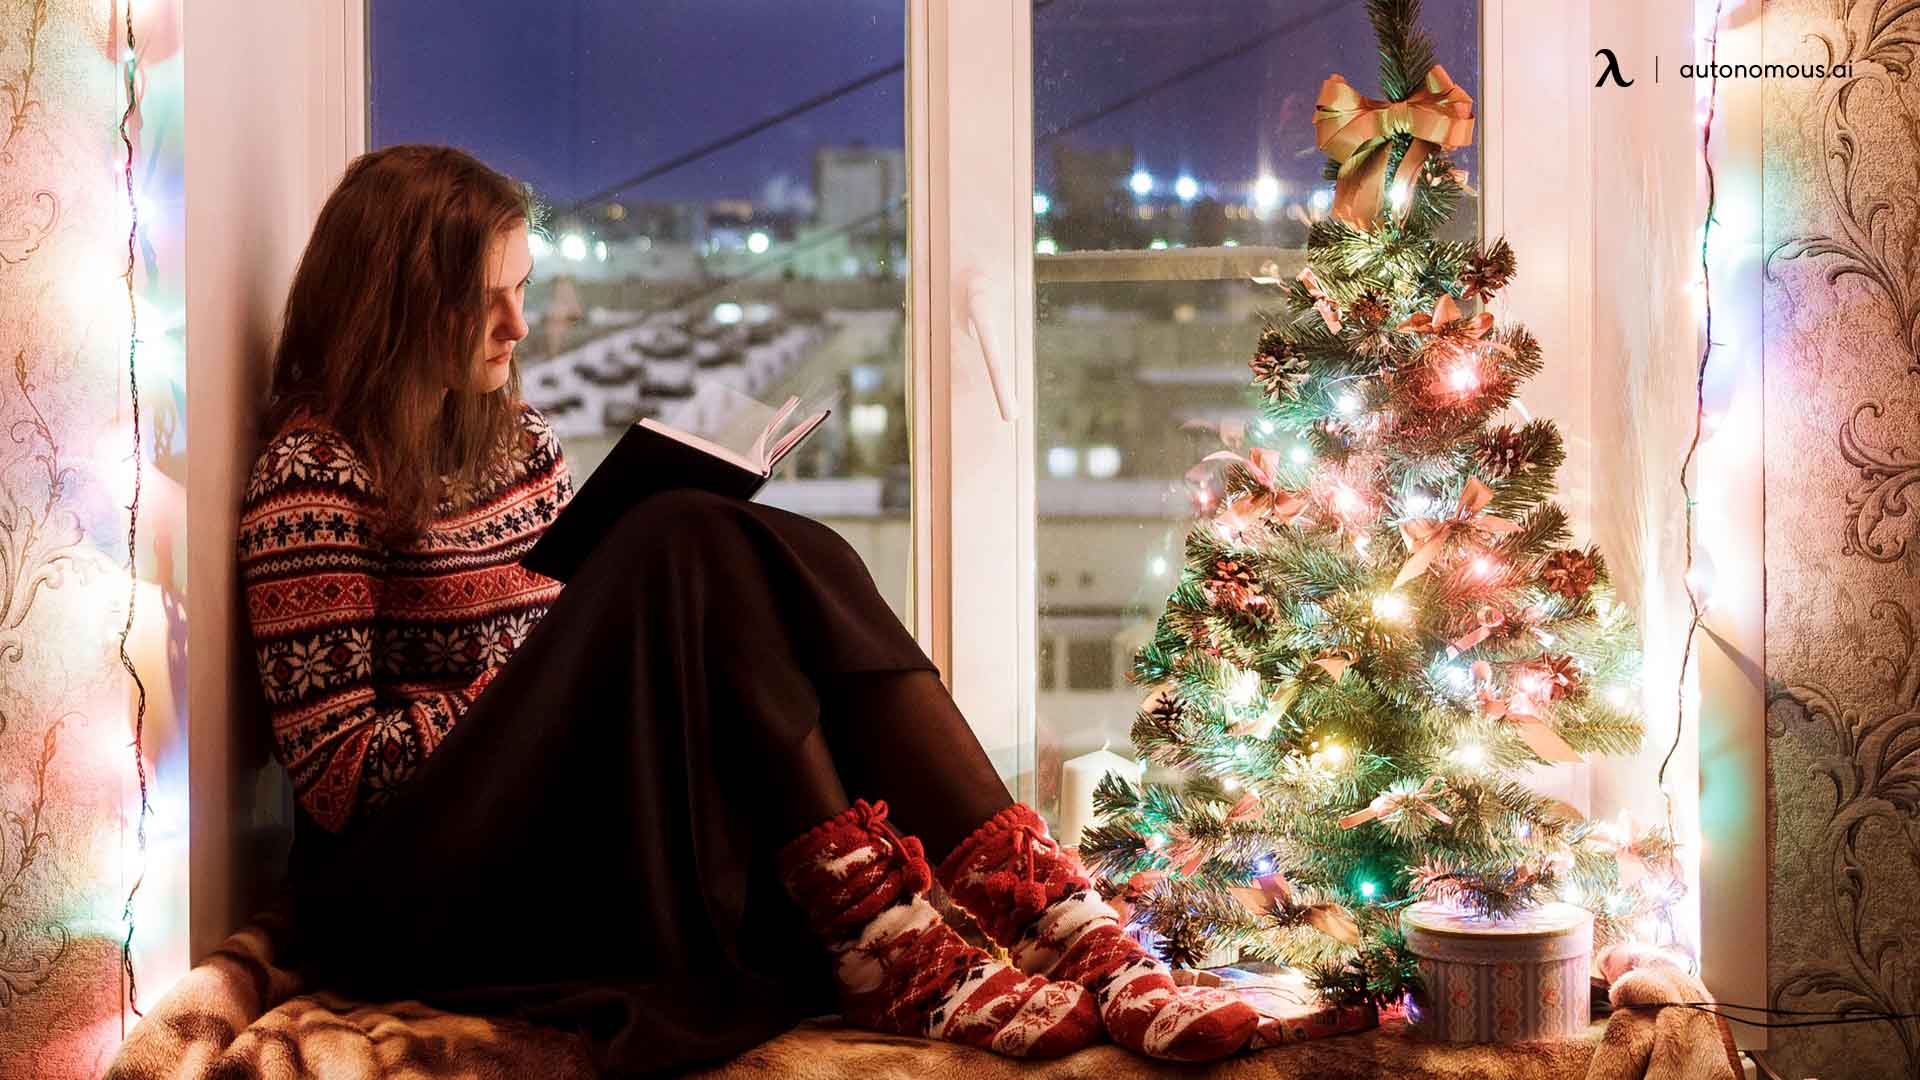 Near the Window - Best Place for Christmas Tree